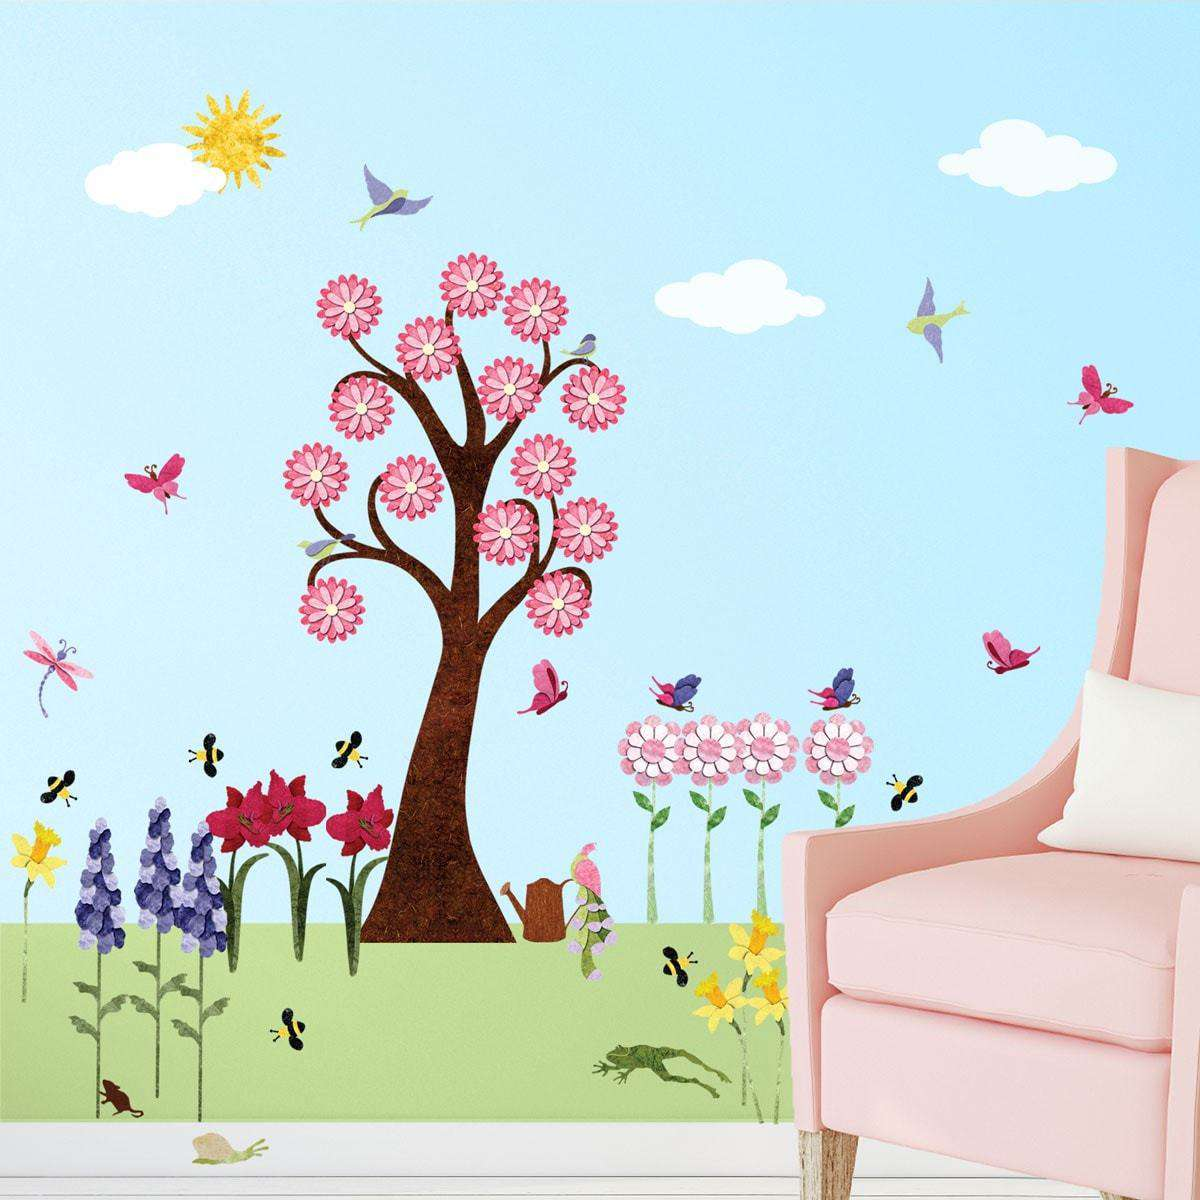 Flower wall decals for girls room peel stick flower stickers flower wall decals for girls room peel stick flower stickers large tree decal amipublicfo Choice Image